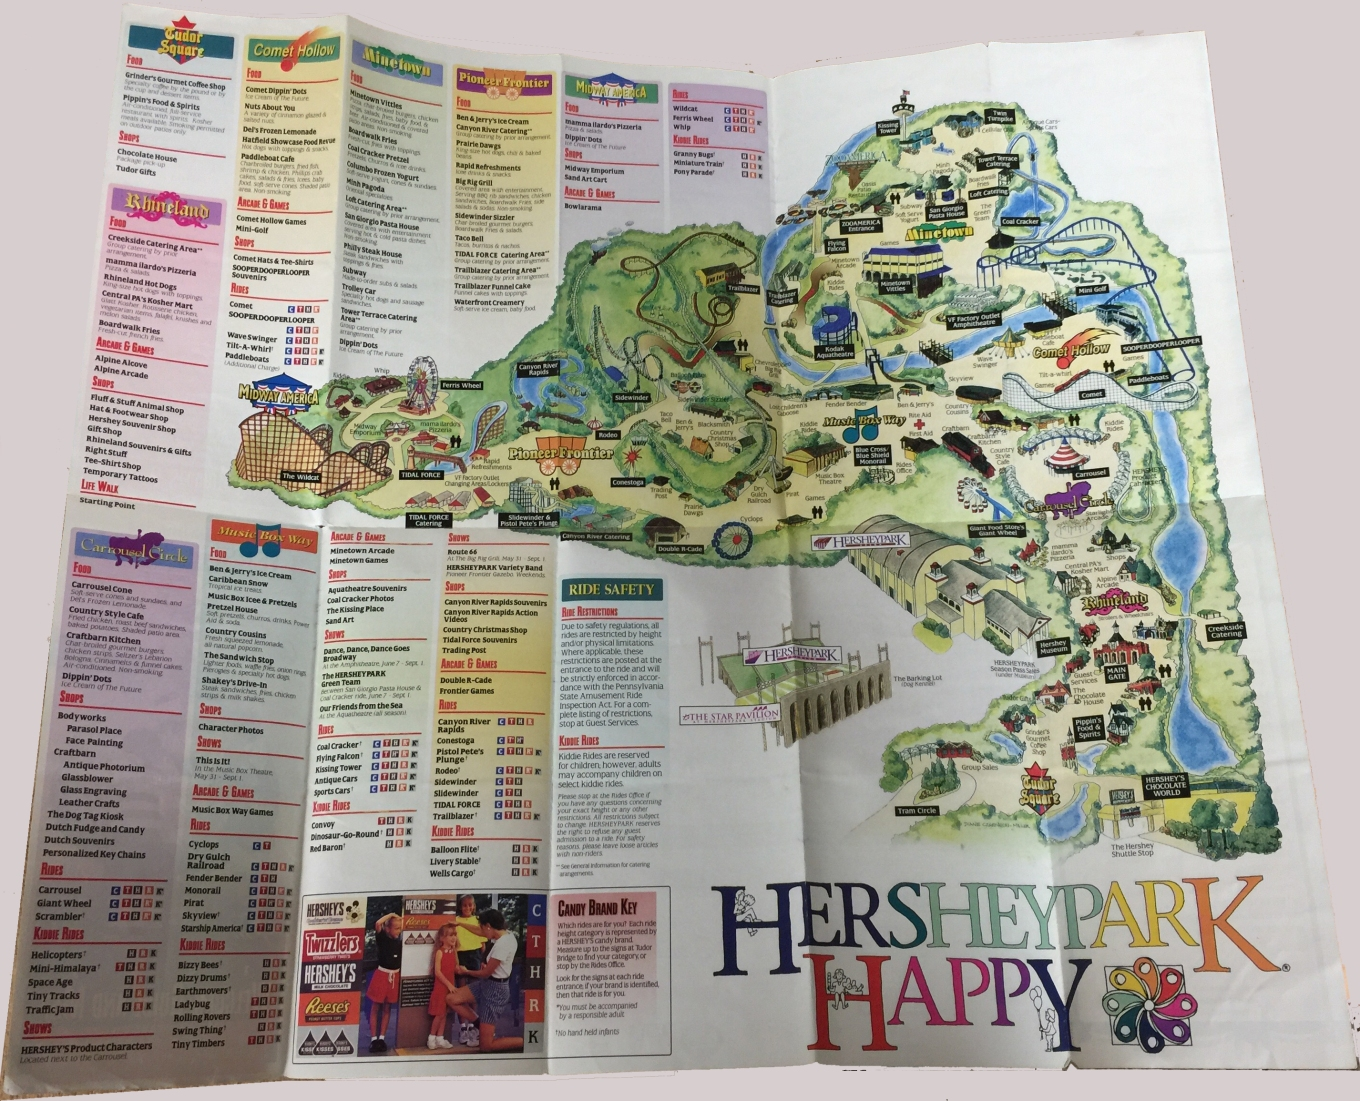 1997 Hersheypark map